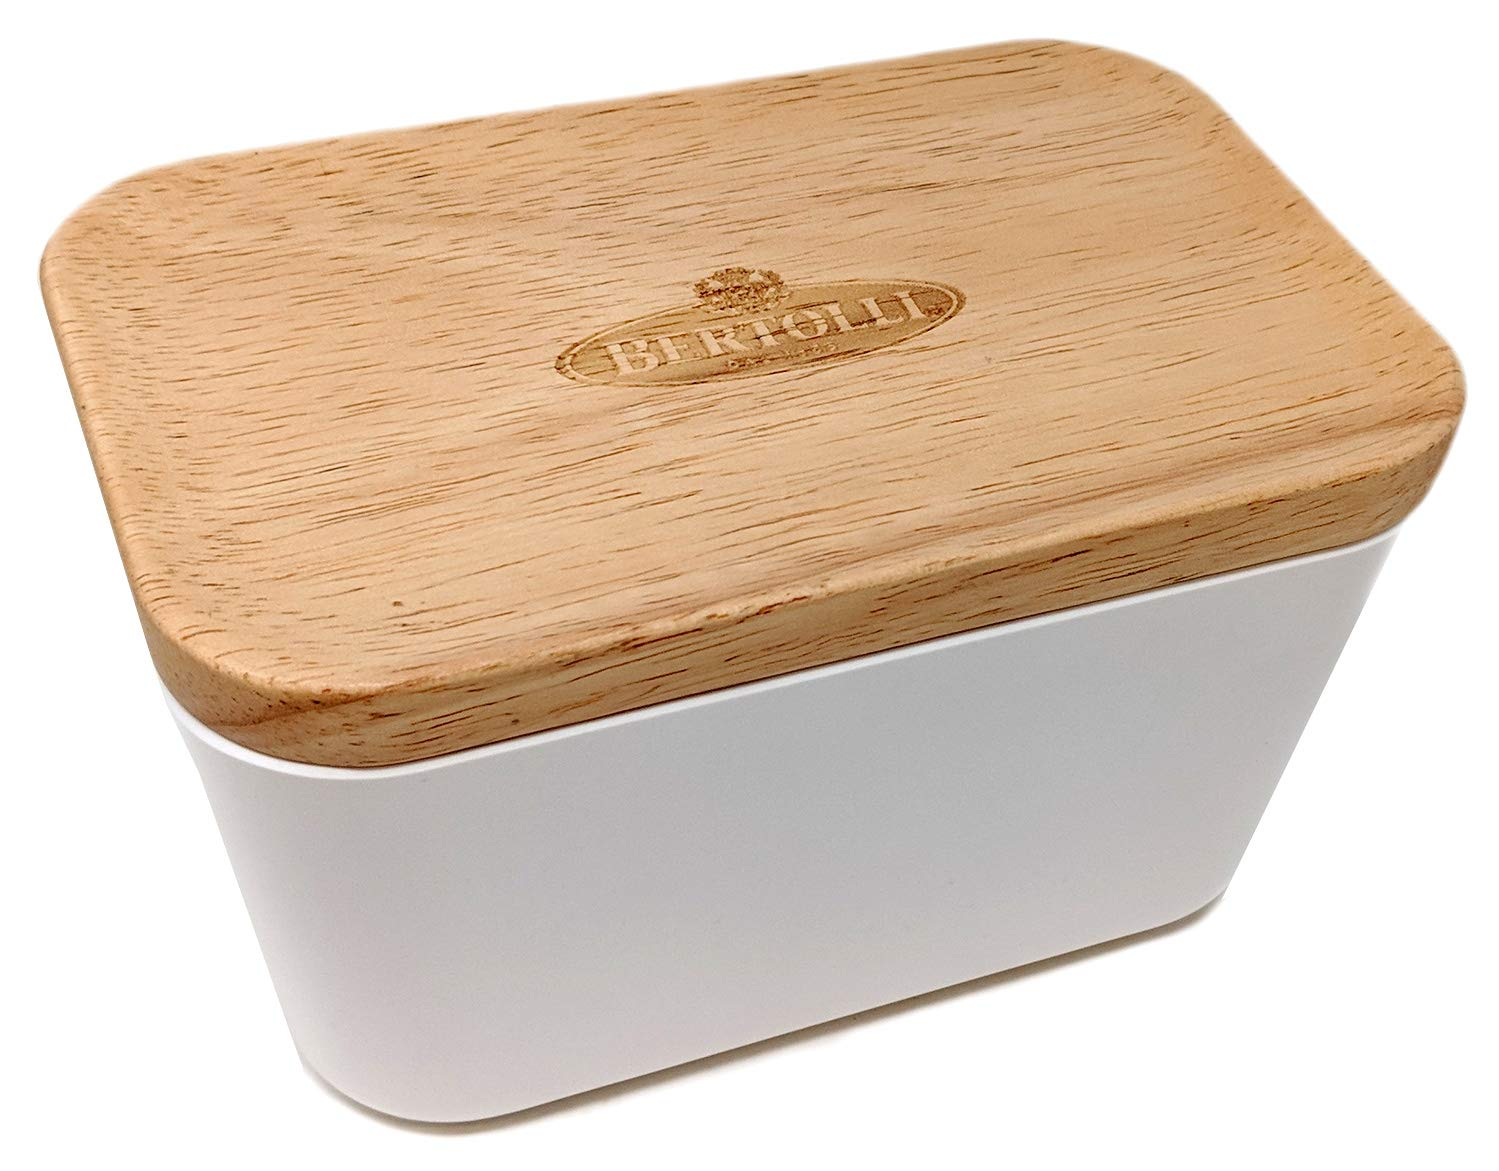 Bertolli White Melamine Butter Dish with Wood Lid, Limited Edition Bertolli Limited Edition